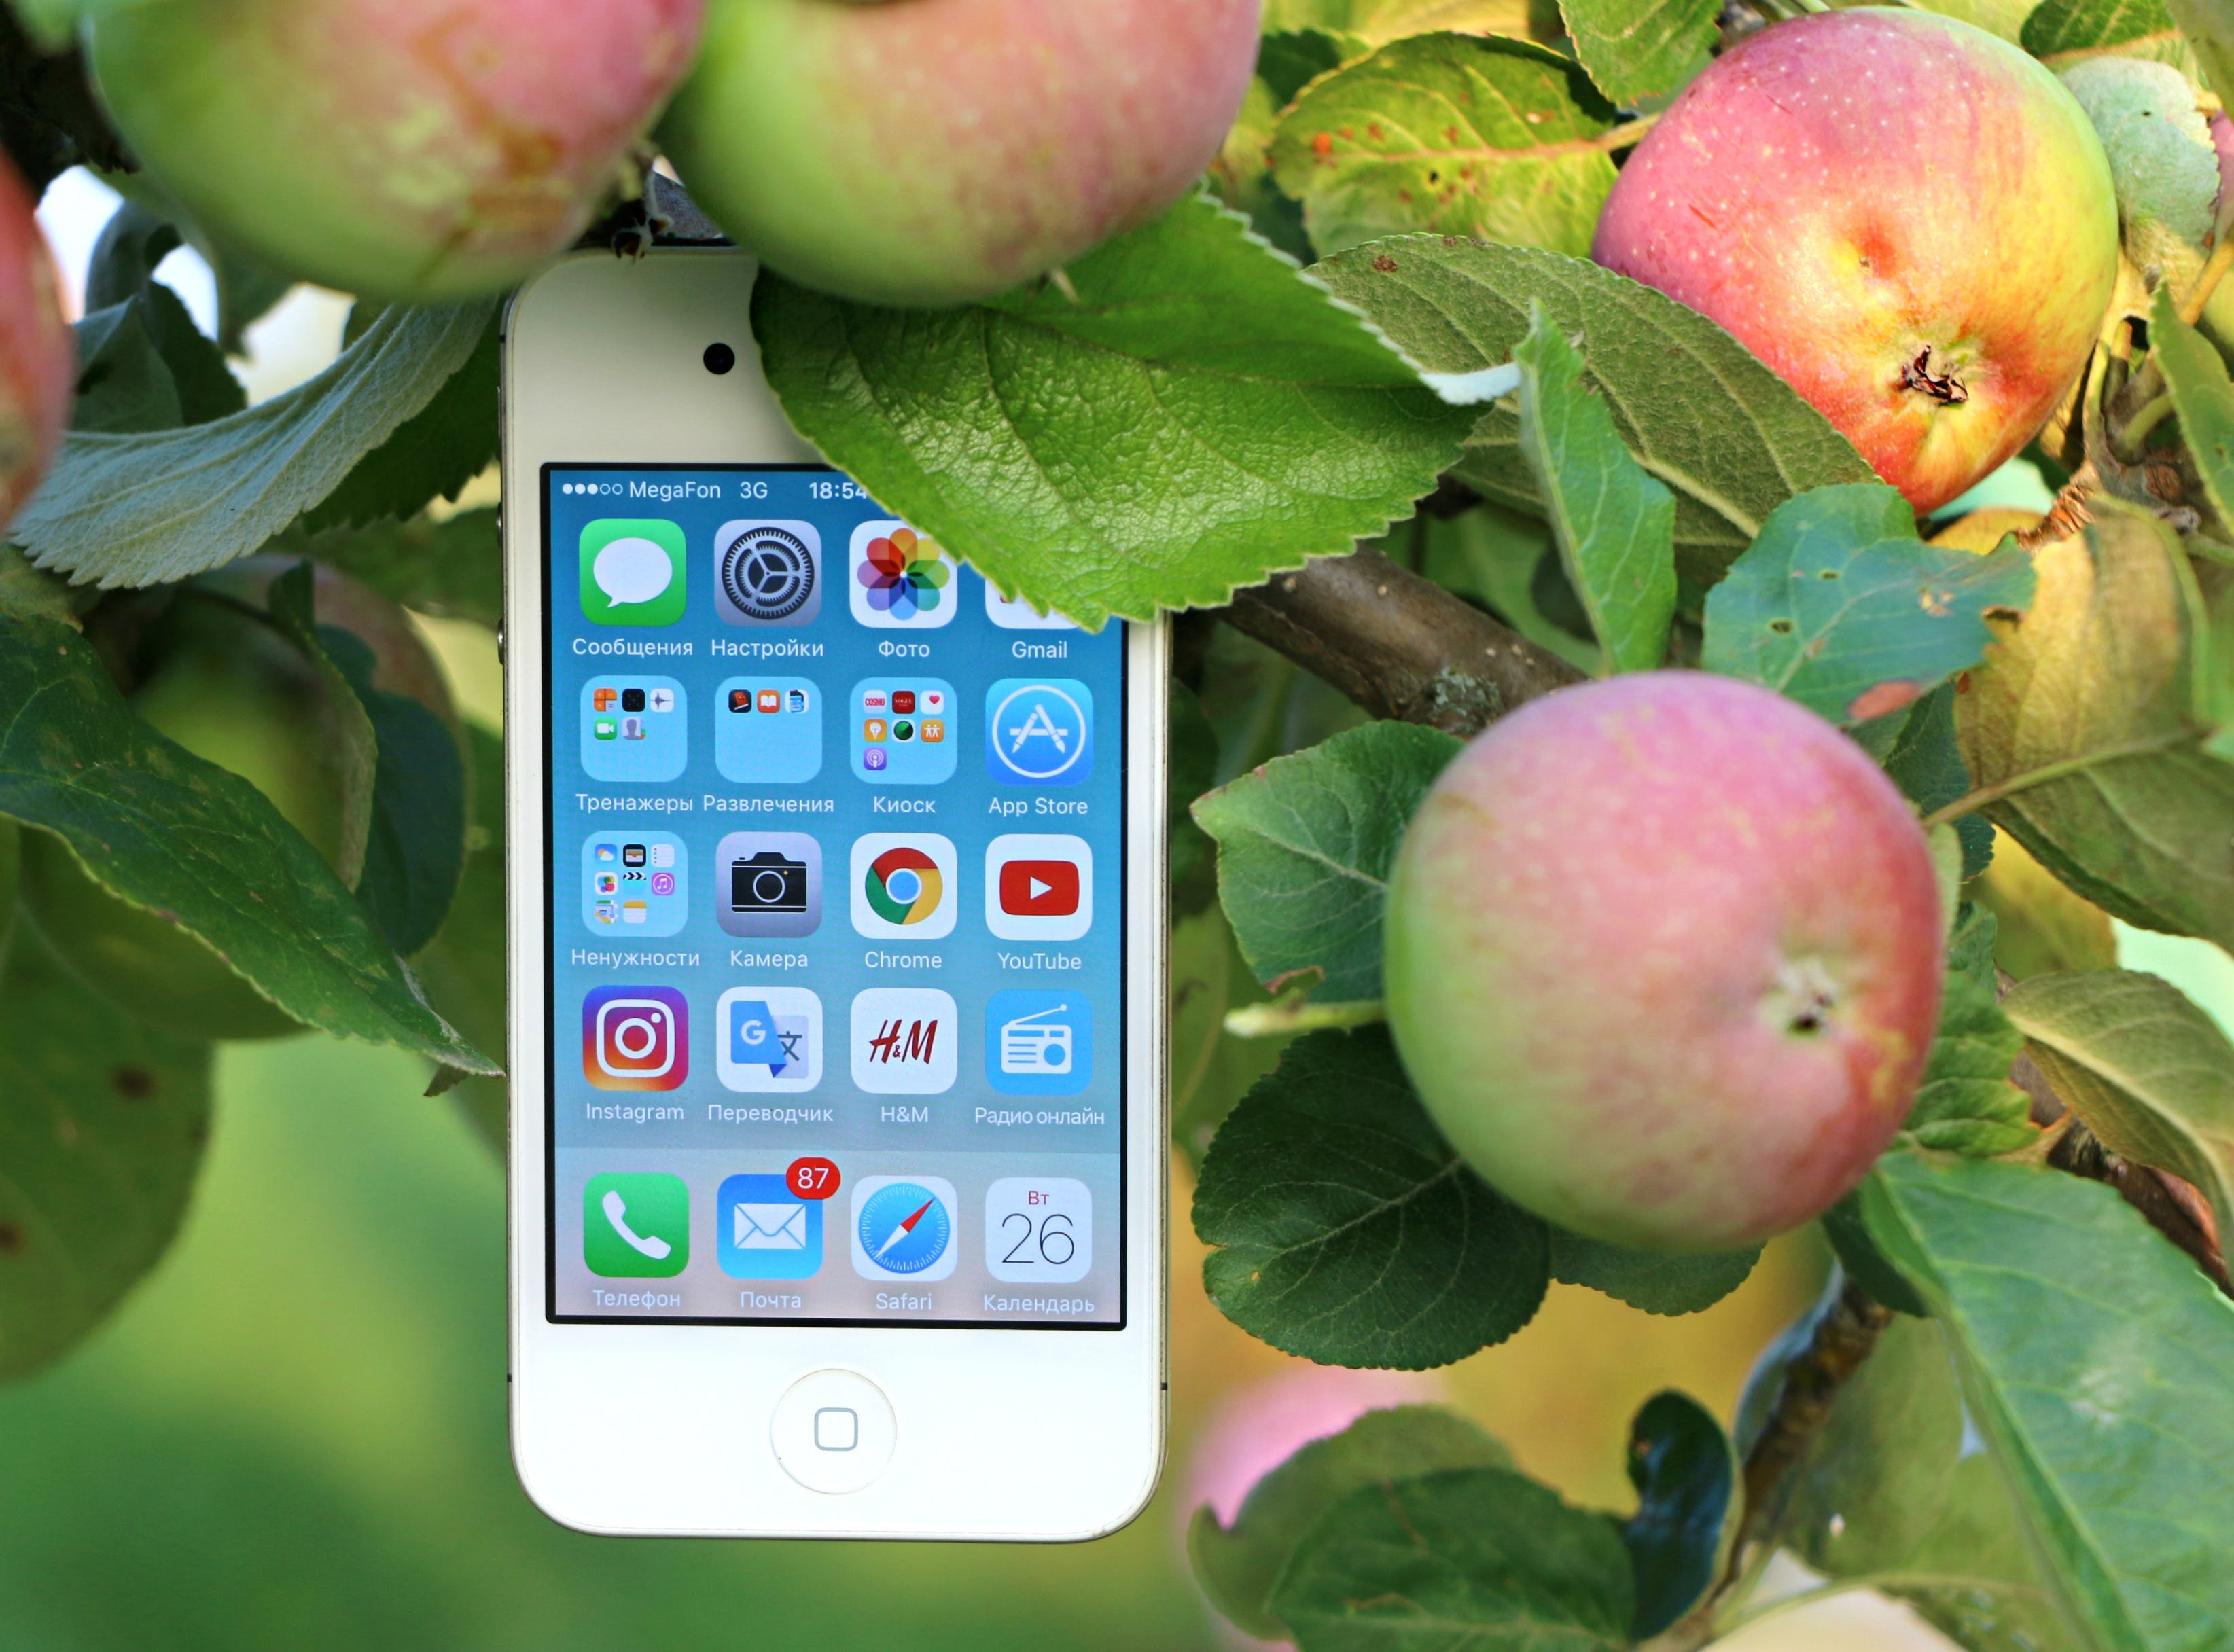 White Iphone 4 Hanging on Branch